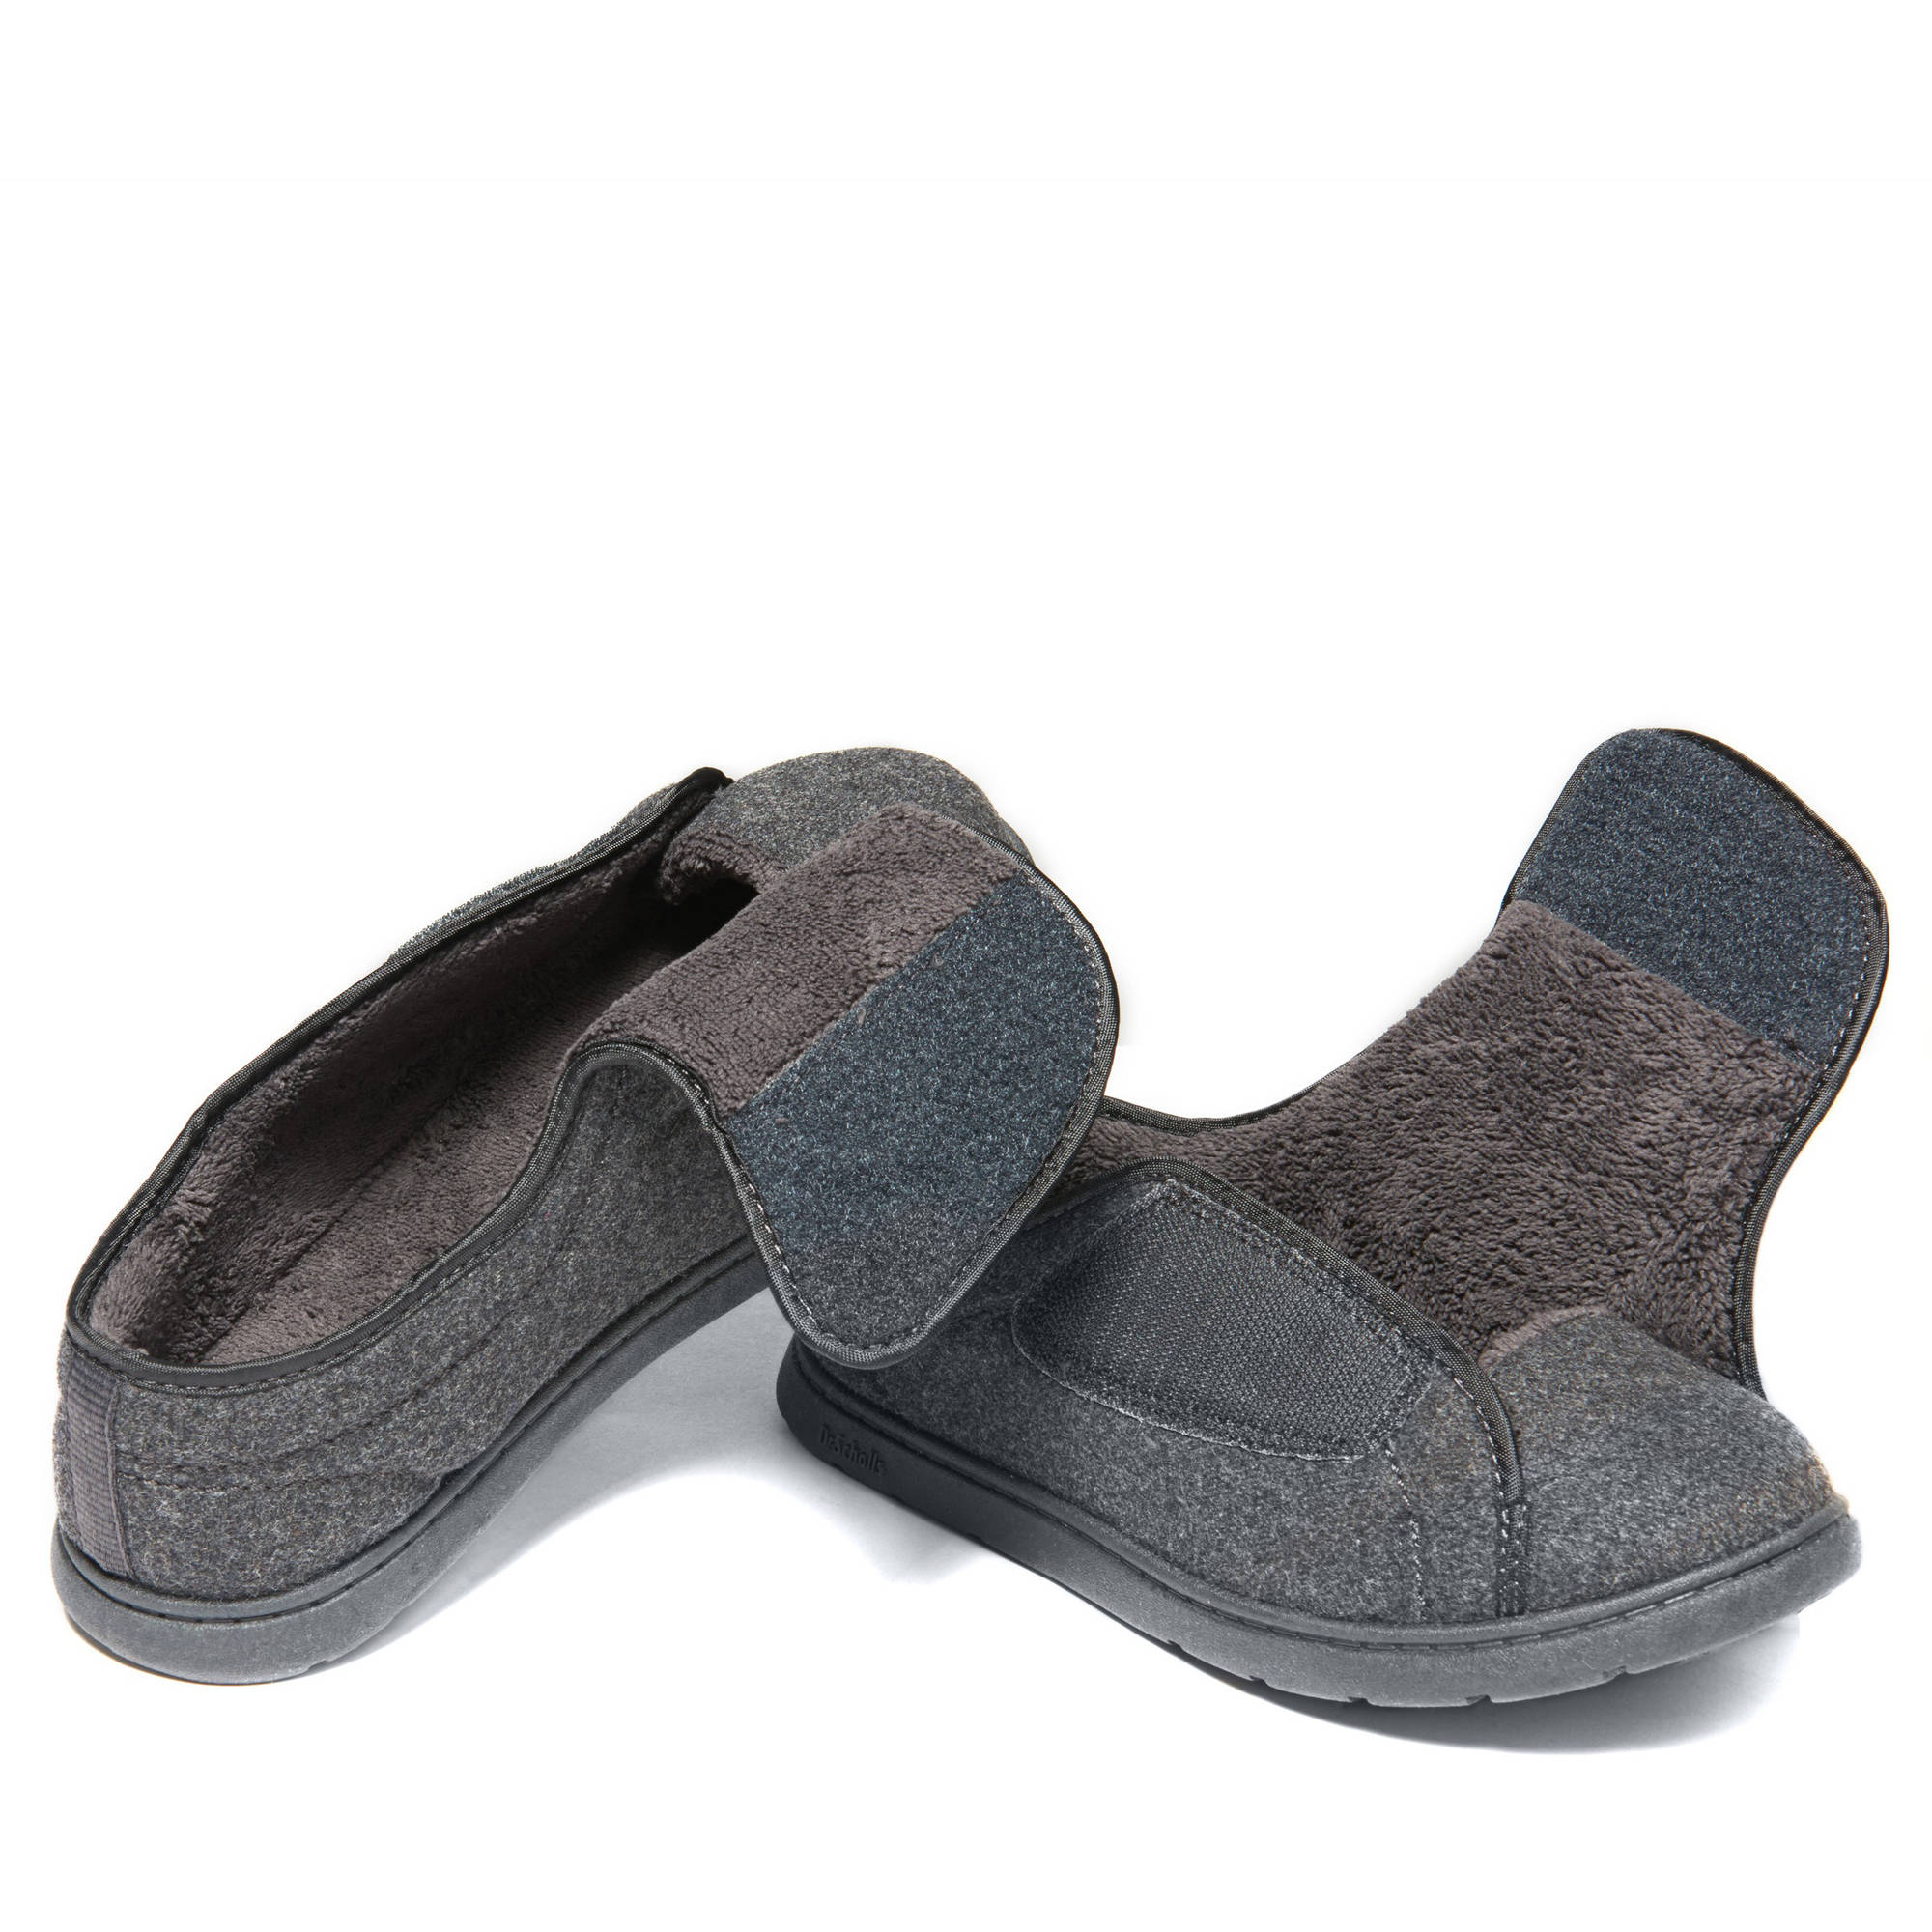 d997162aa4b Dr. Scholl s Shoes - Dr. Scholls Women s Flannery Therapeutic Slipper